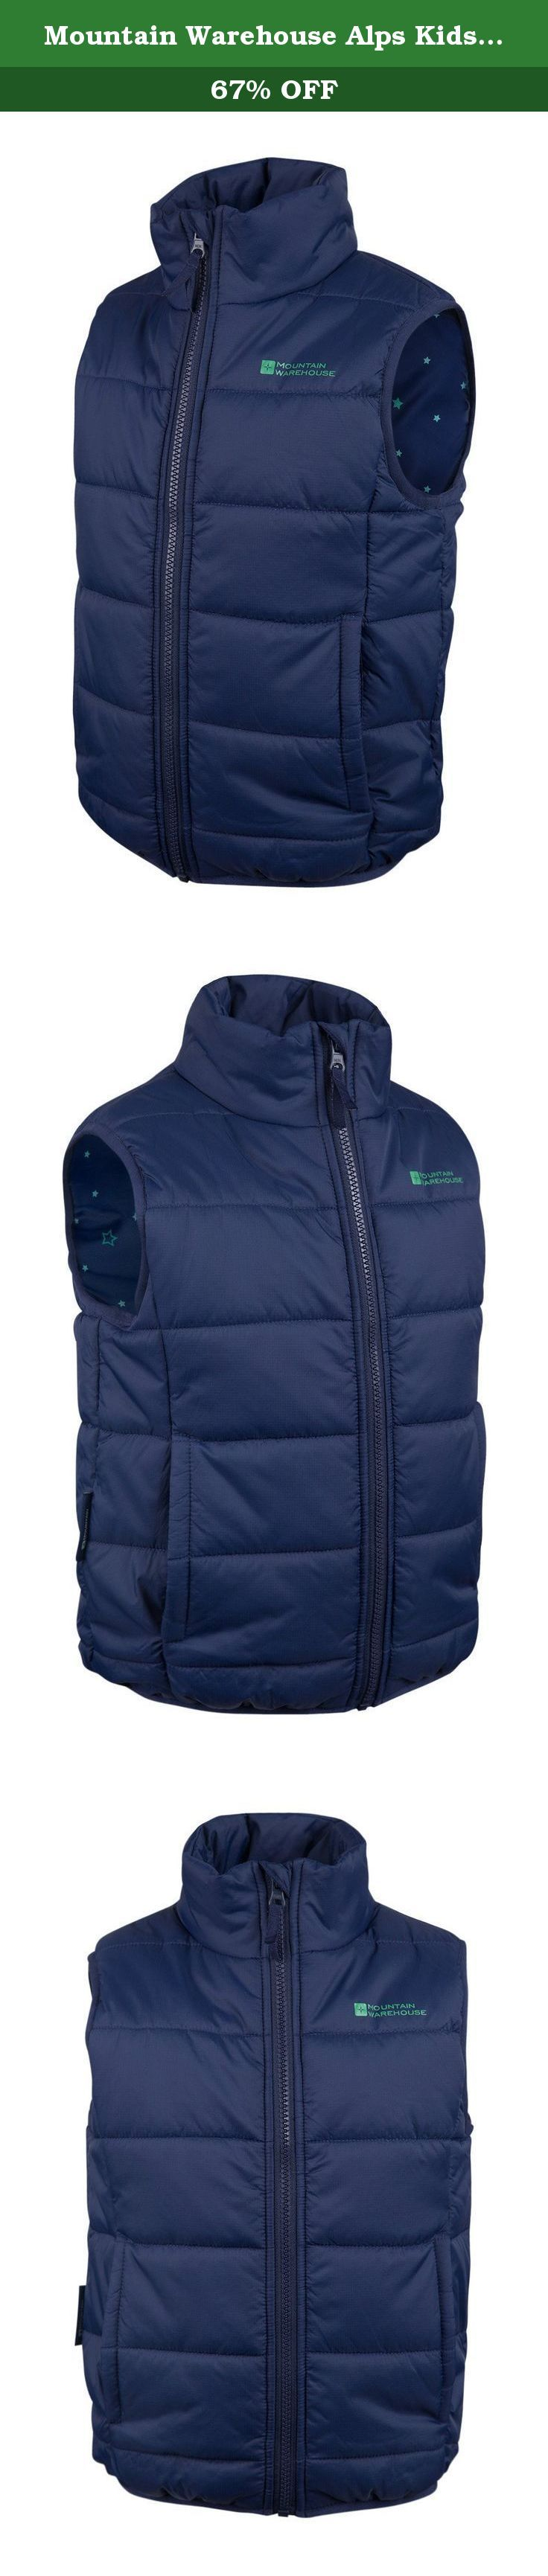 Mountain Warehouse Alps Kids Padded Bodywarmer Navy 11-12 years. Padded water-resistant and stylish, the Alps Kids Padded Gilet is perfect for layering up your child's outfit. Designed in durable water-resistant fabric with microfibre filling for extra warmth, this versatile and stylish gilet is great for active kids. Water-resistant - This garment has a waterproof coating to make the fabric water-resistant. Perfect for light showers and everyday use Padding - Microfibre filling provides...